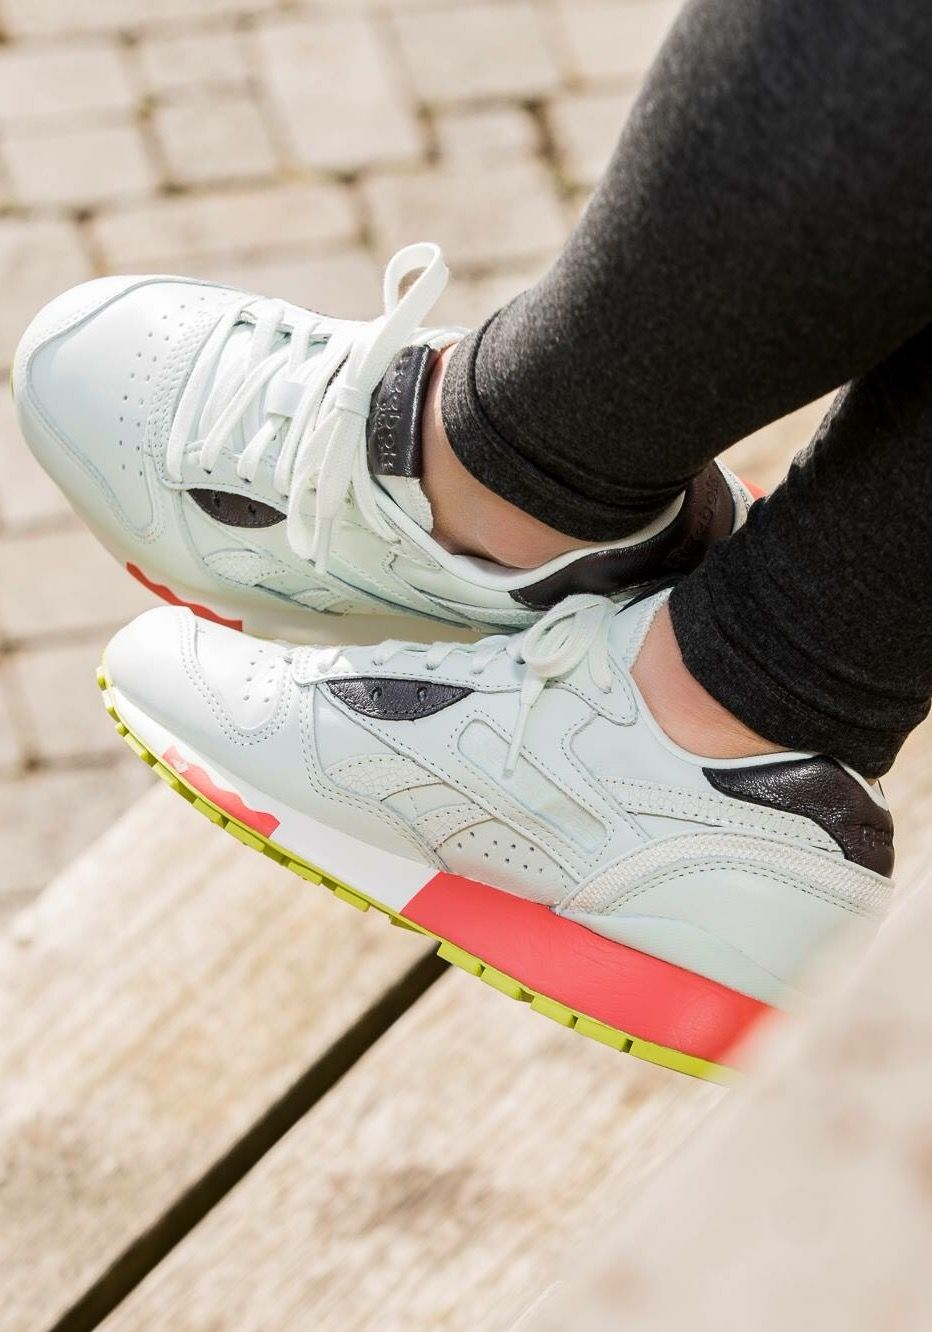 5 Healthy Lunch Hour Hacks. StockholmFaceSneakersSearch. Face Stockholm x Reebok LX 8500